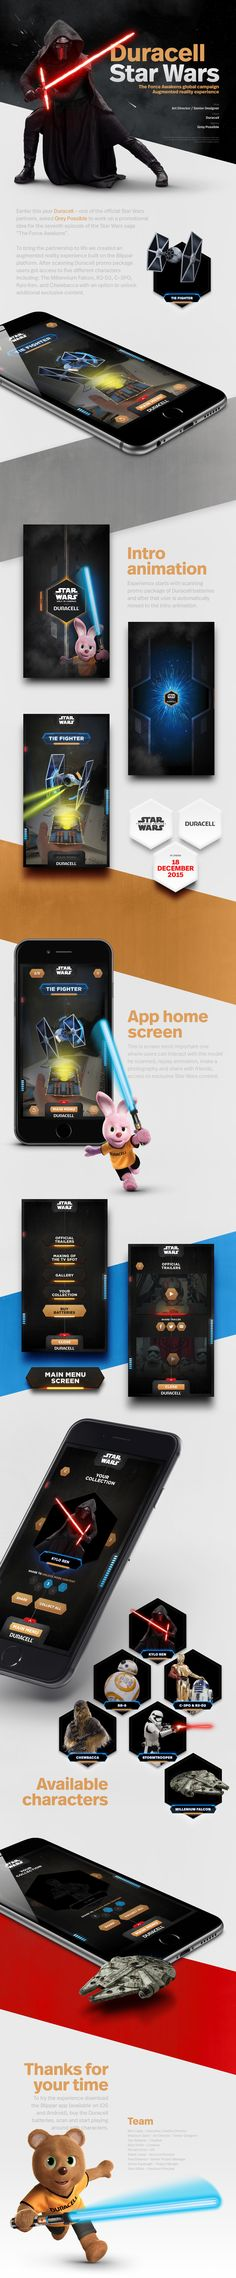 "Duracell x Star Wars –– ""The Force Awakens"" on Behance"